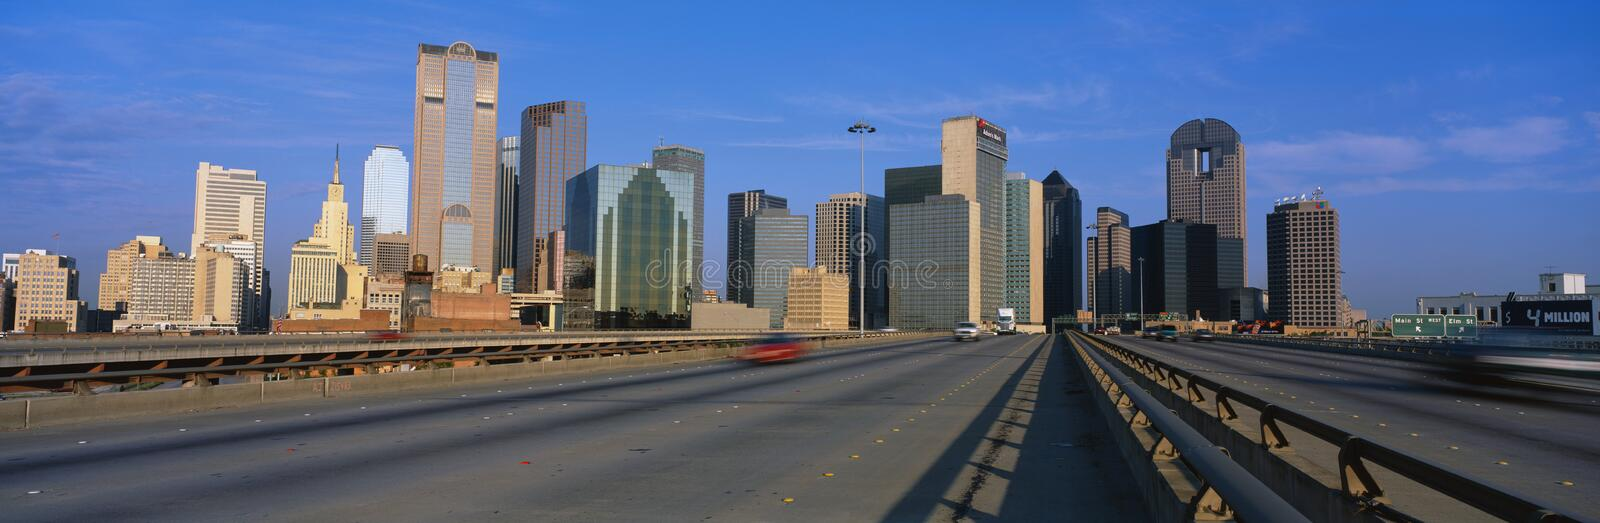 This is the freeway to the center of the city with the skyline in the background. The Chase Tower is the building in the center. royalty free stock images